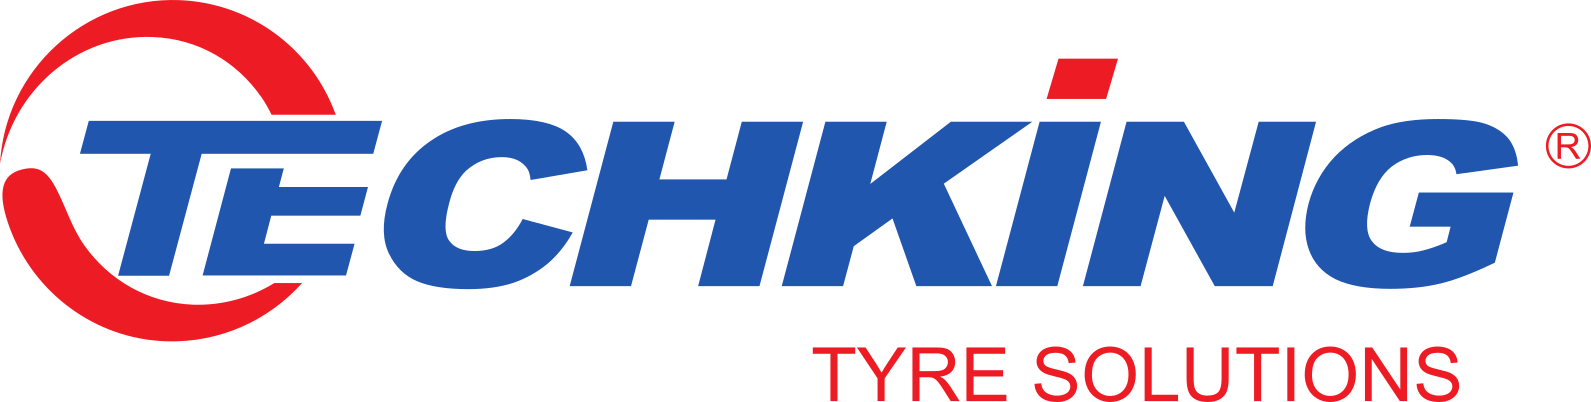 Techking Tyres Australia Pty Ltd